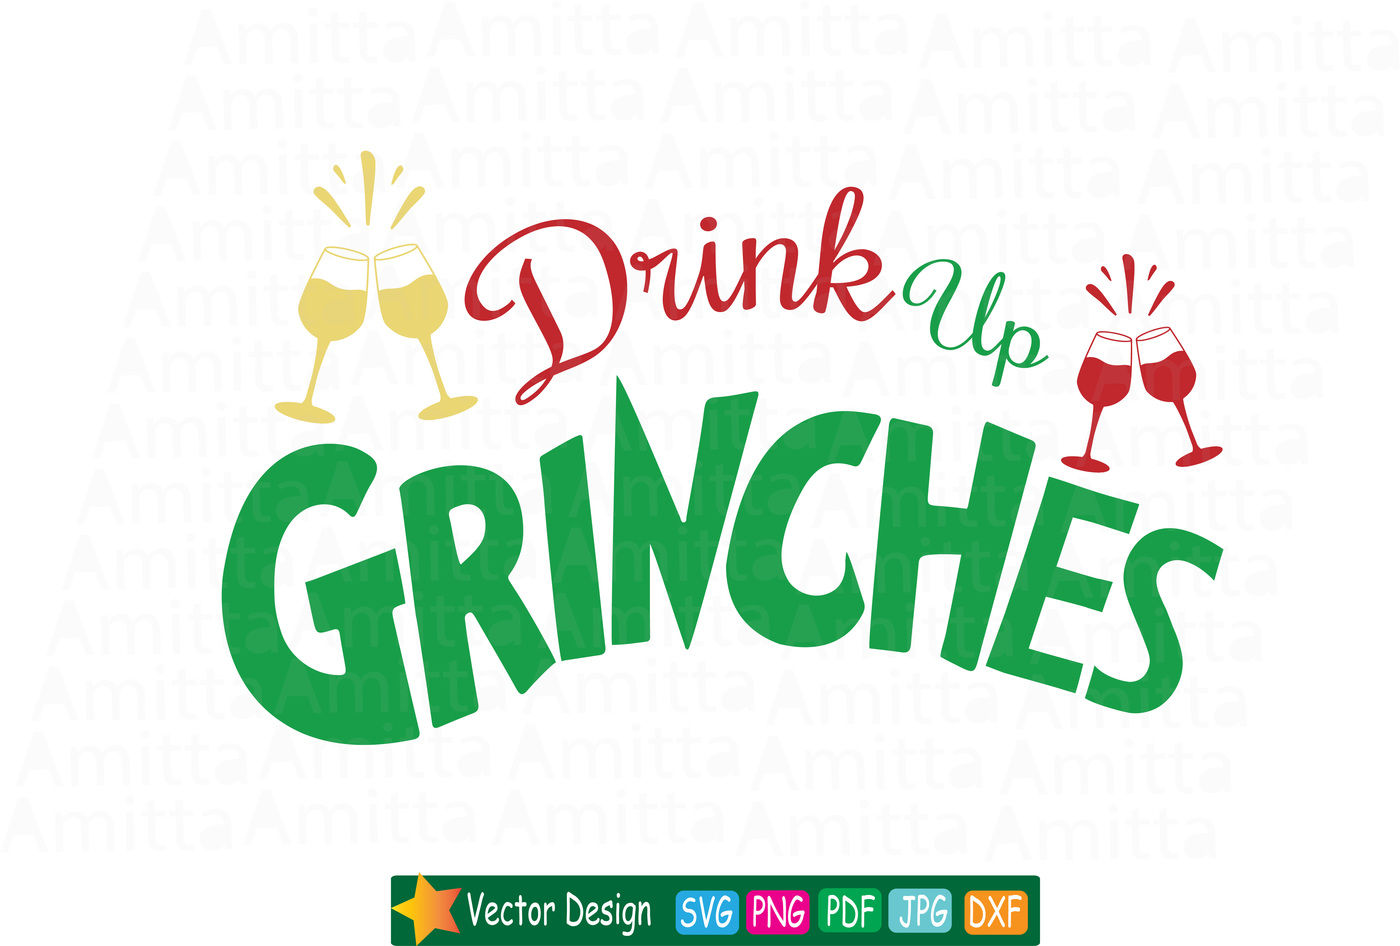 drink up grinches svg #925, Download drawings